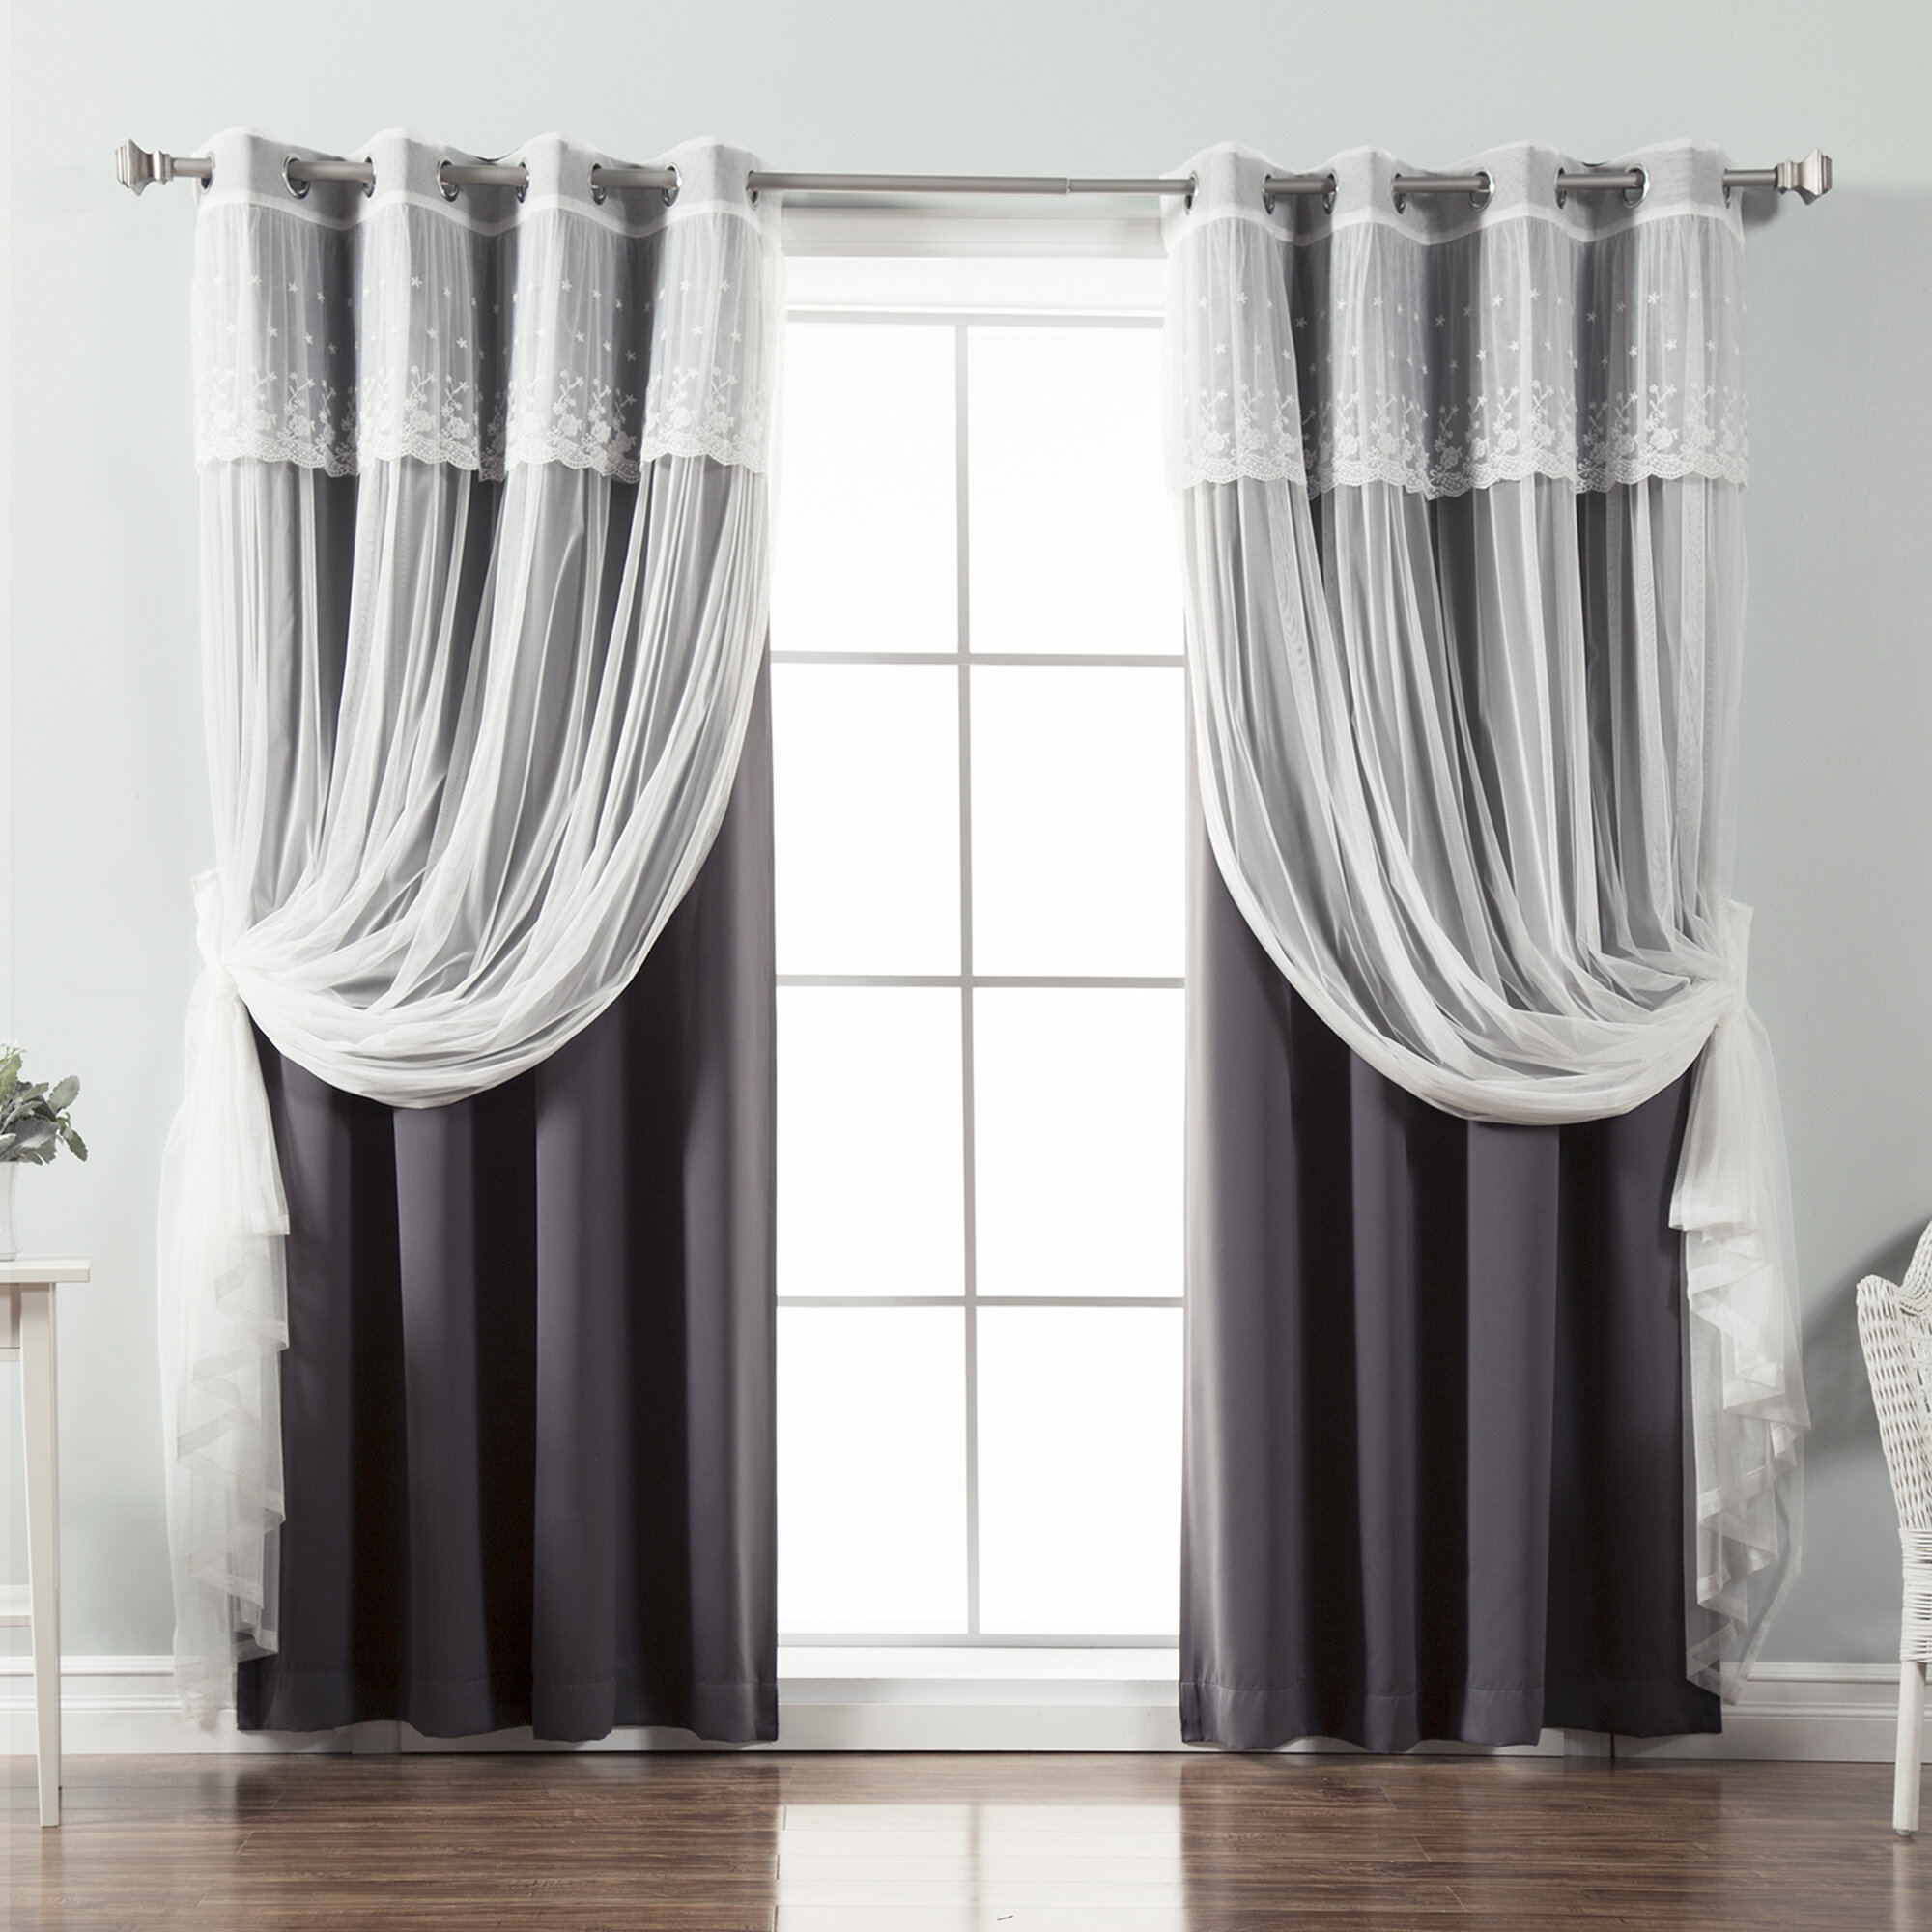 Tulle Overlay Blackout Rod Pocket Thermal Window Curtains Drapes Bedroom Decor